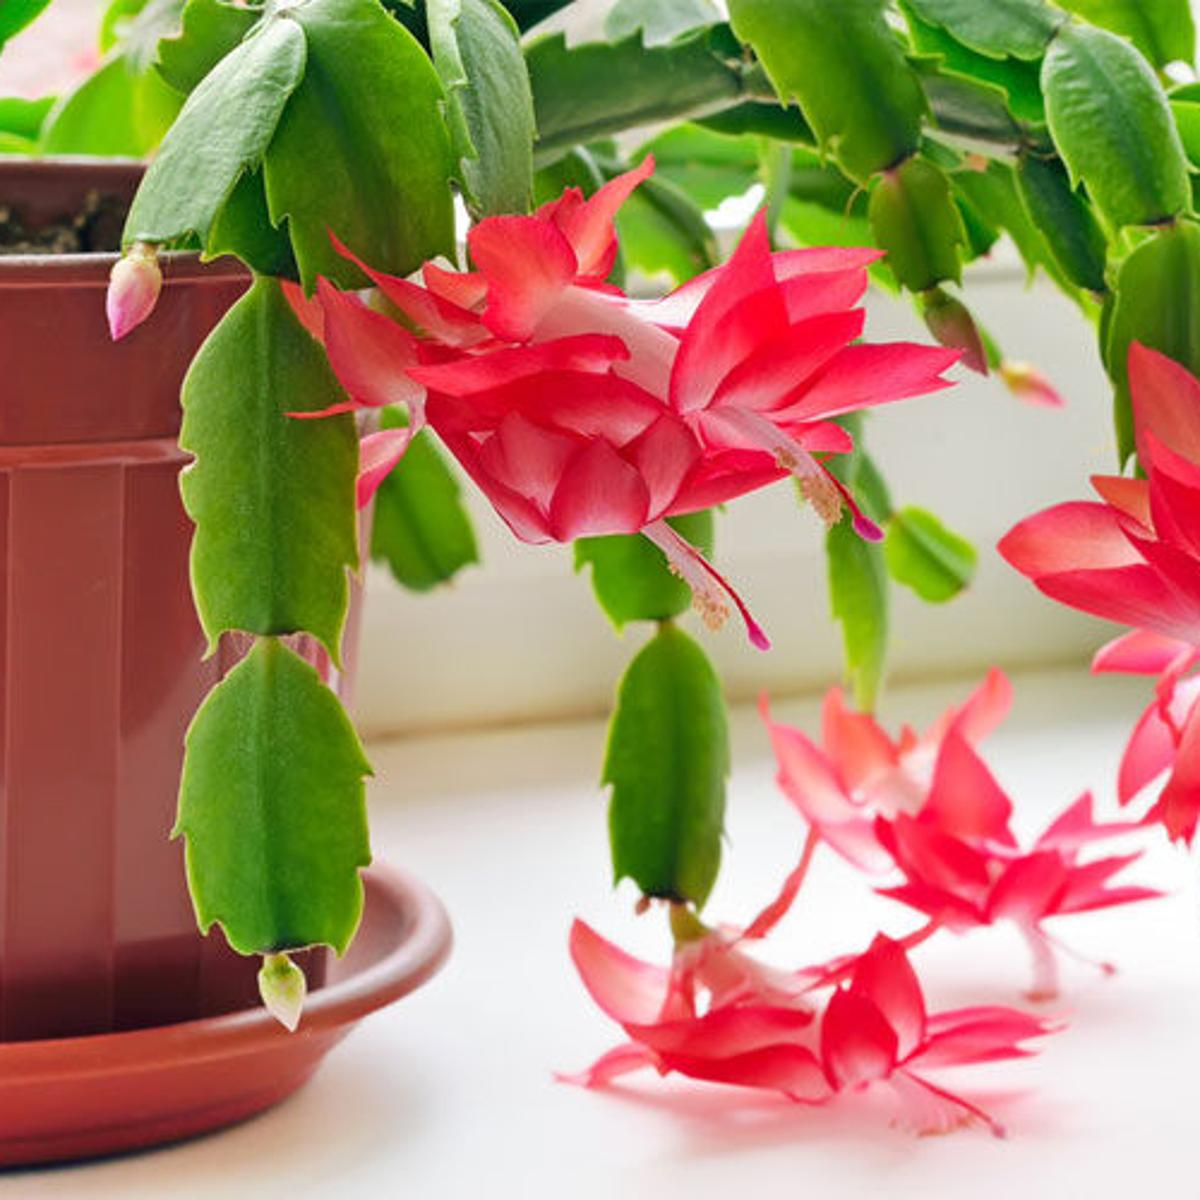 Christmas Cactus.Care For Your Christmas Cactus Home Garden Daily